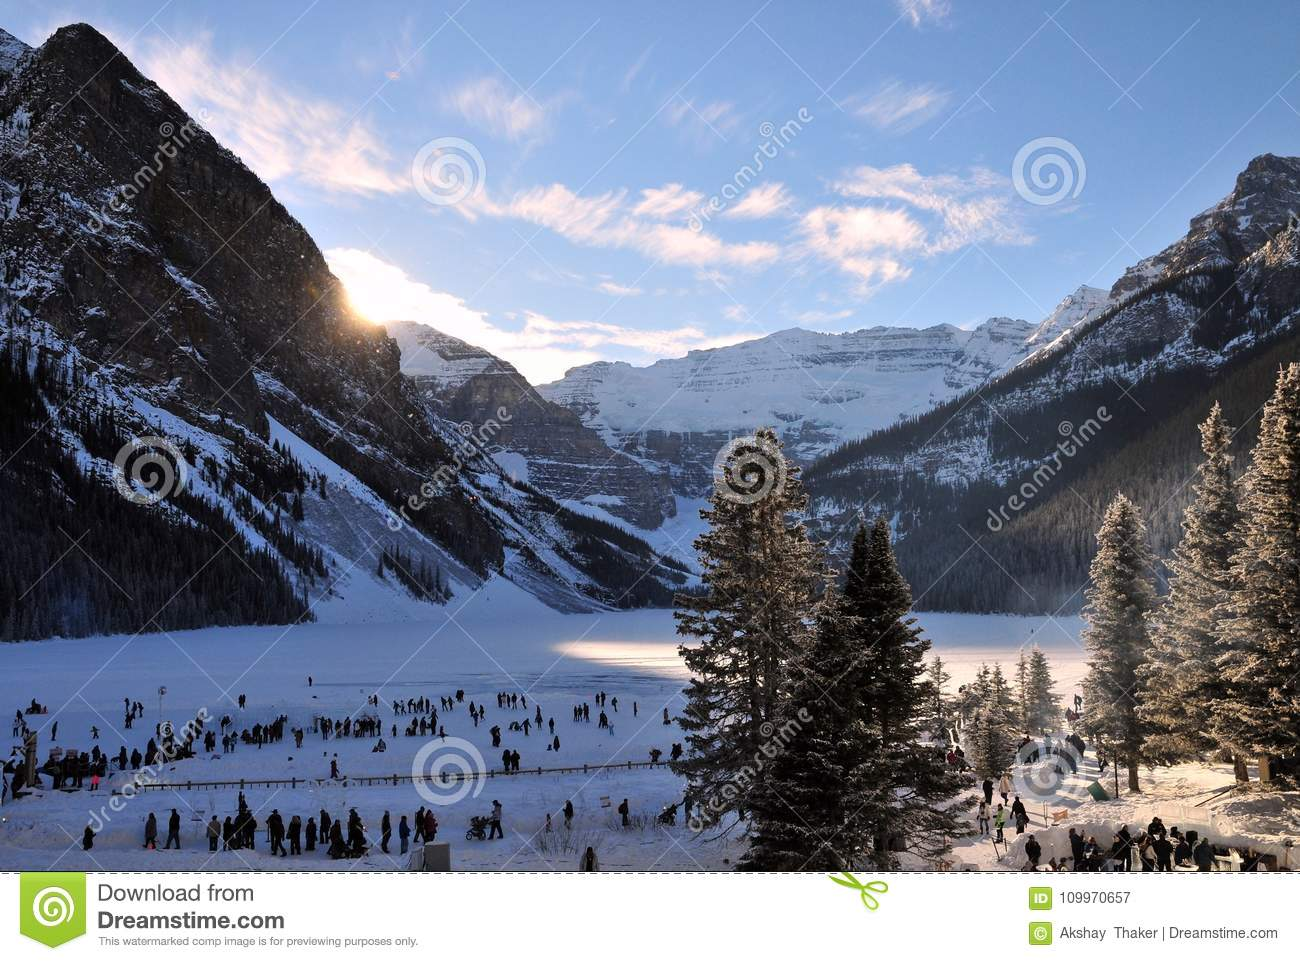 Canadian and tourists are enjoying ice festival at lake Louise in banff national park, Alberta, Canada.